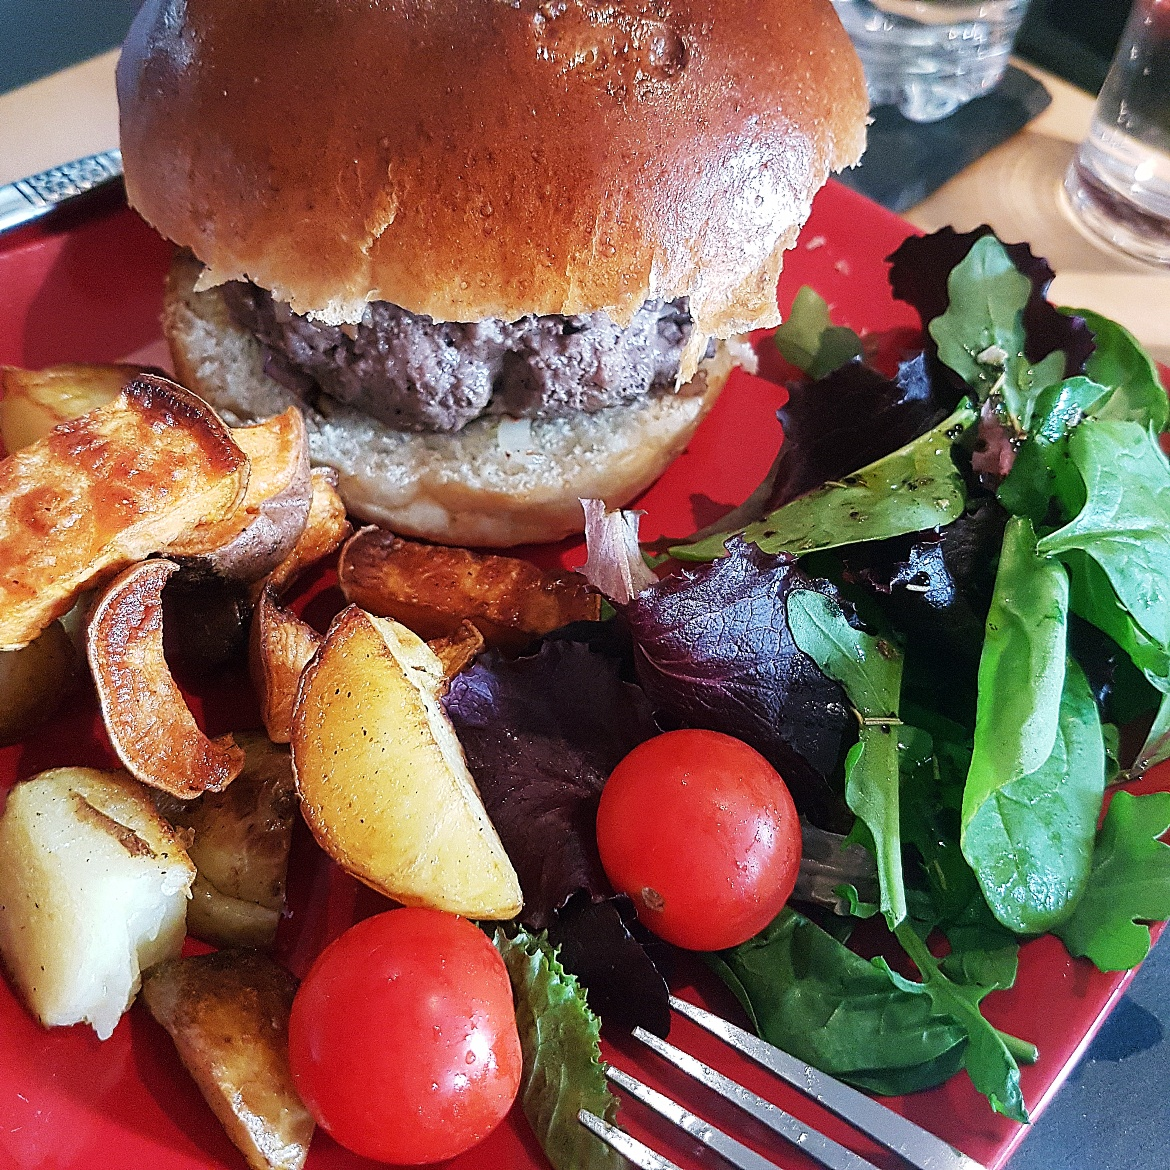 Homemade gourmet burgers by Tim - August 2017 Recap by BeckyBecky Blogs